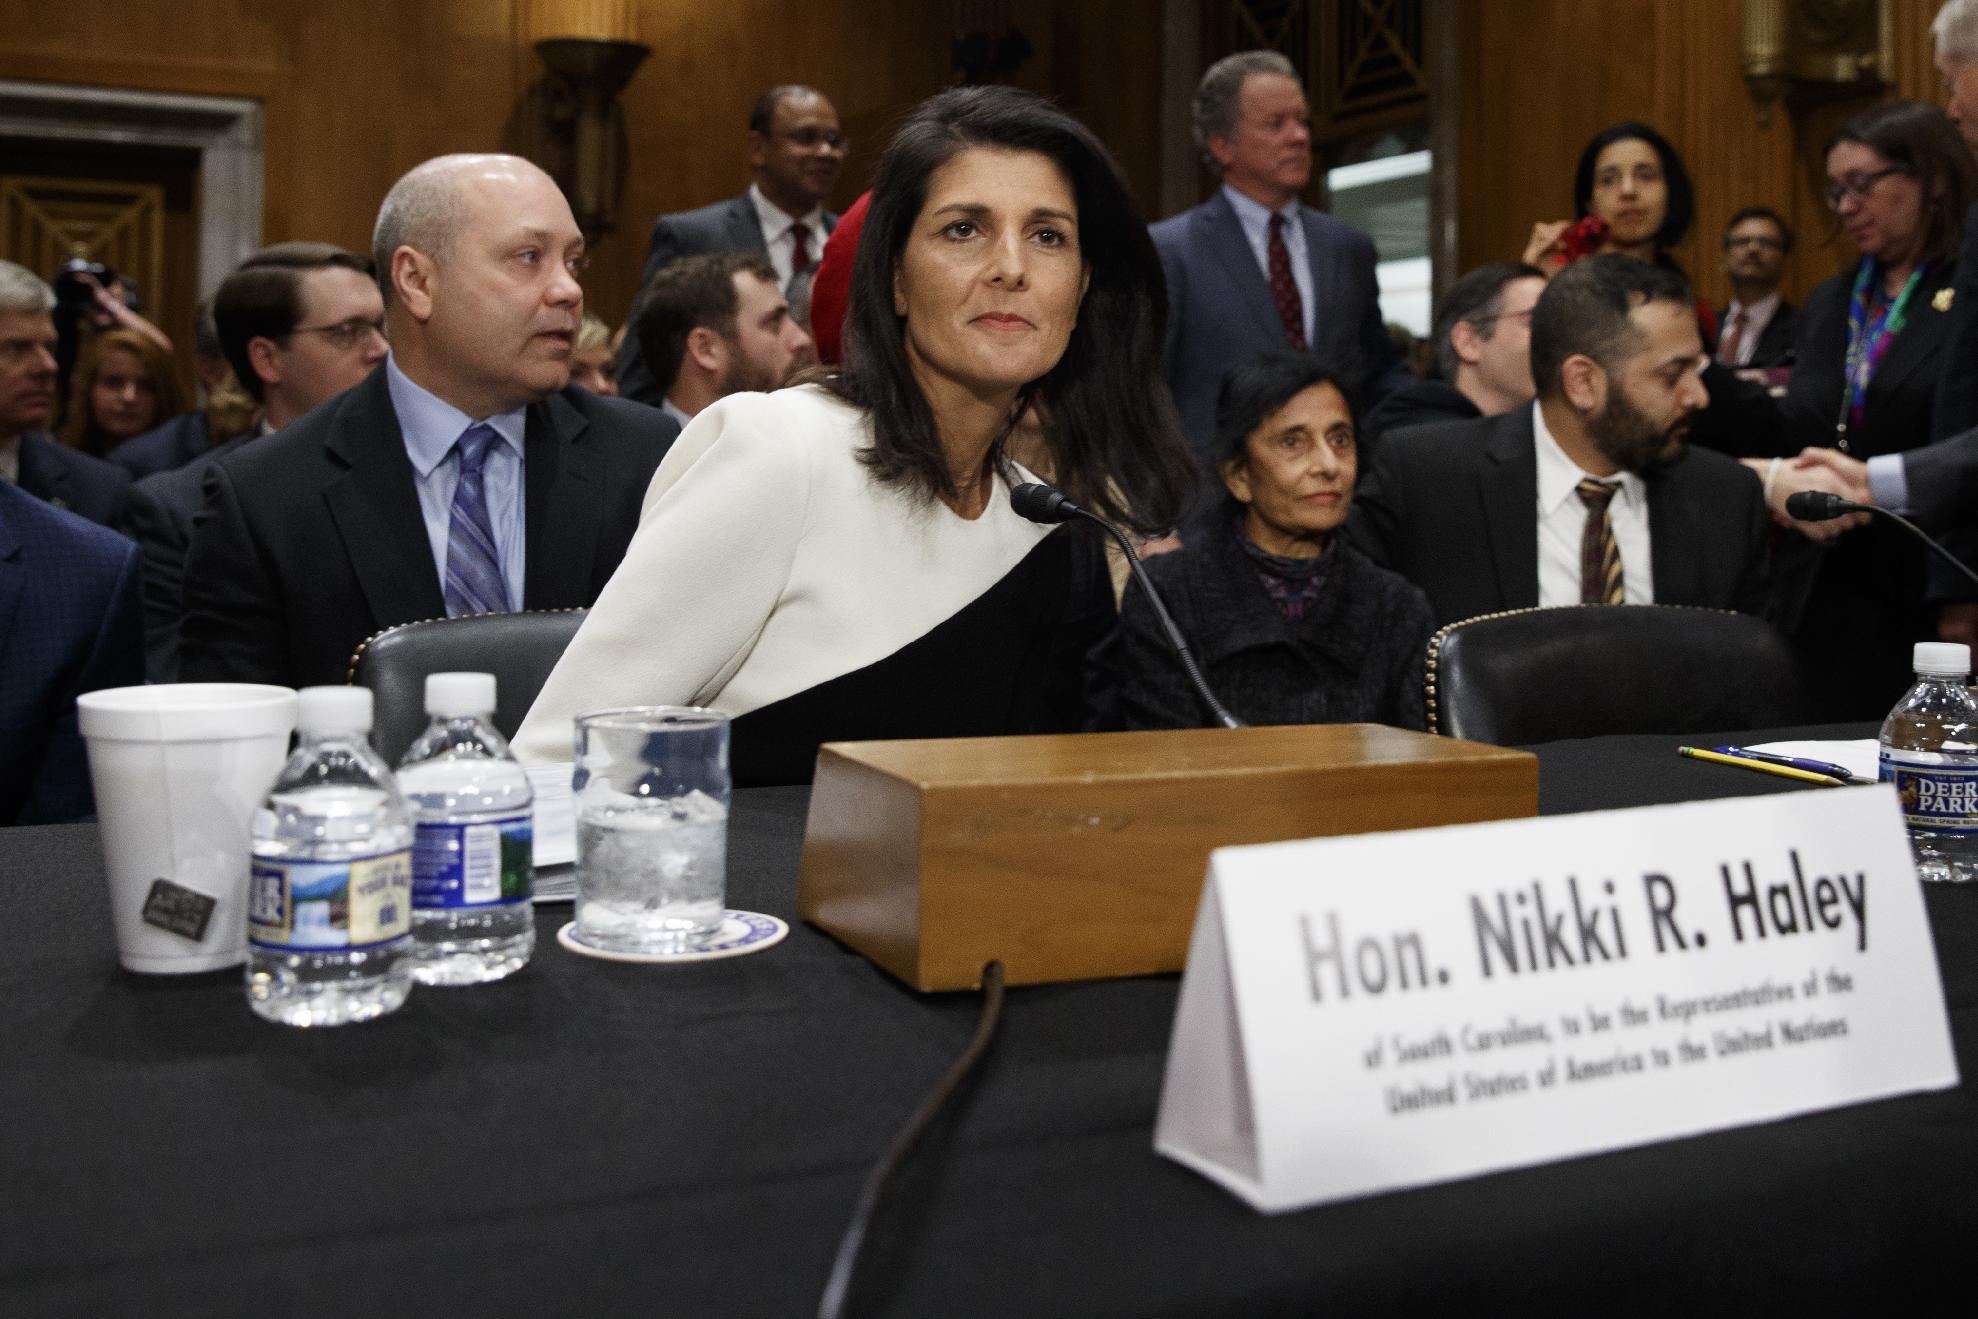 Nikki Haley supports Jerusalem embassy move